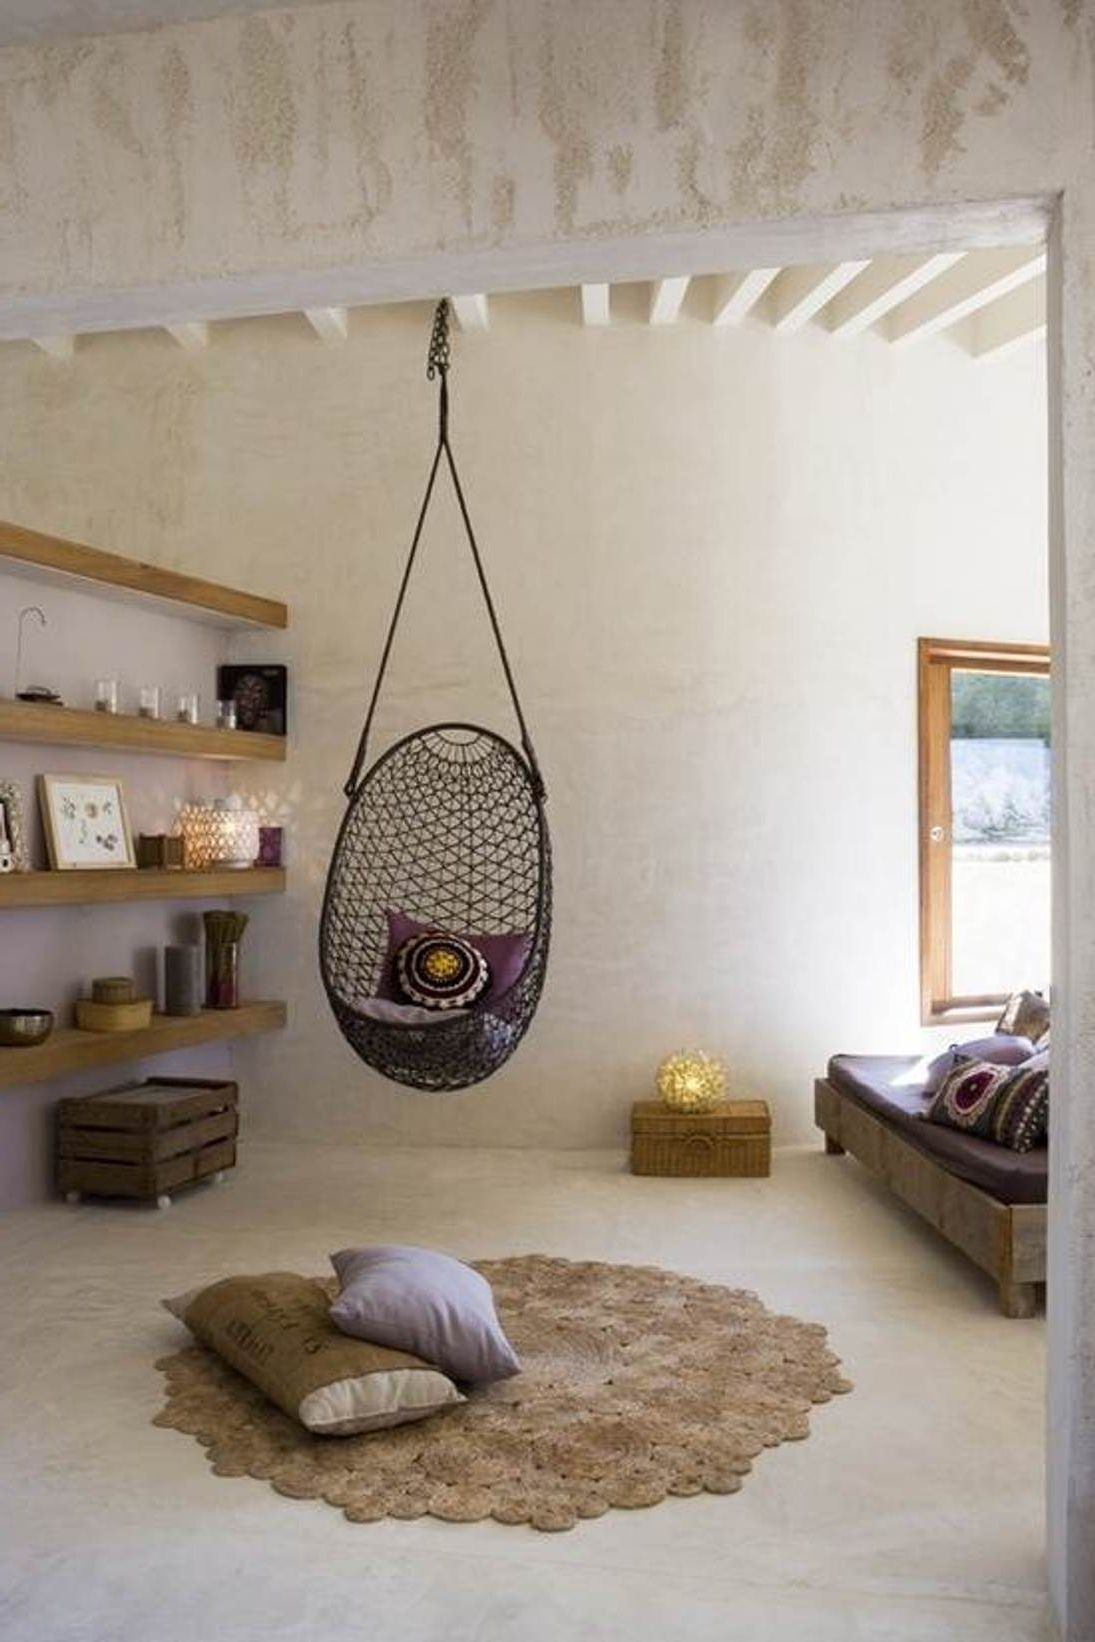 Cool hanging chairs for indoor and outdoor captivating black knit